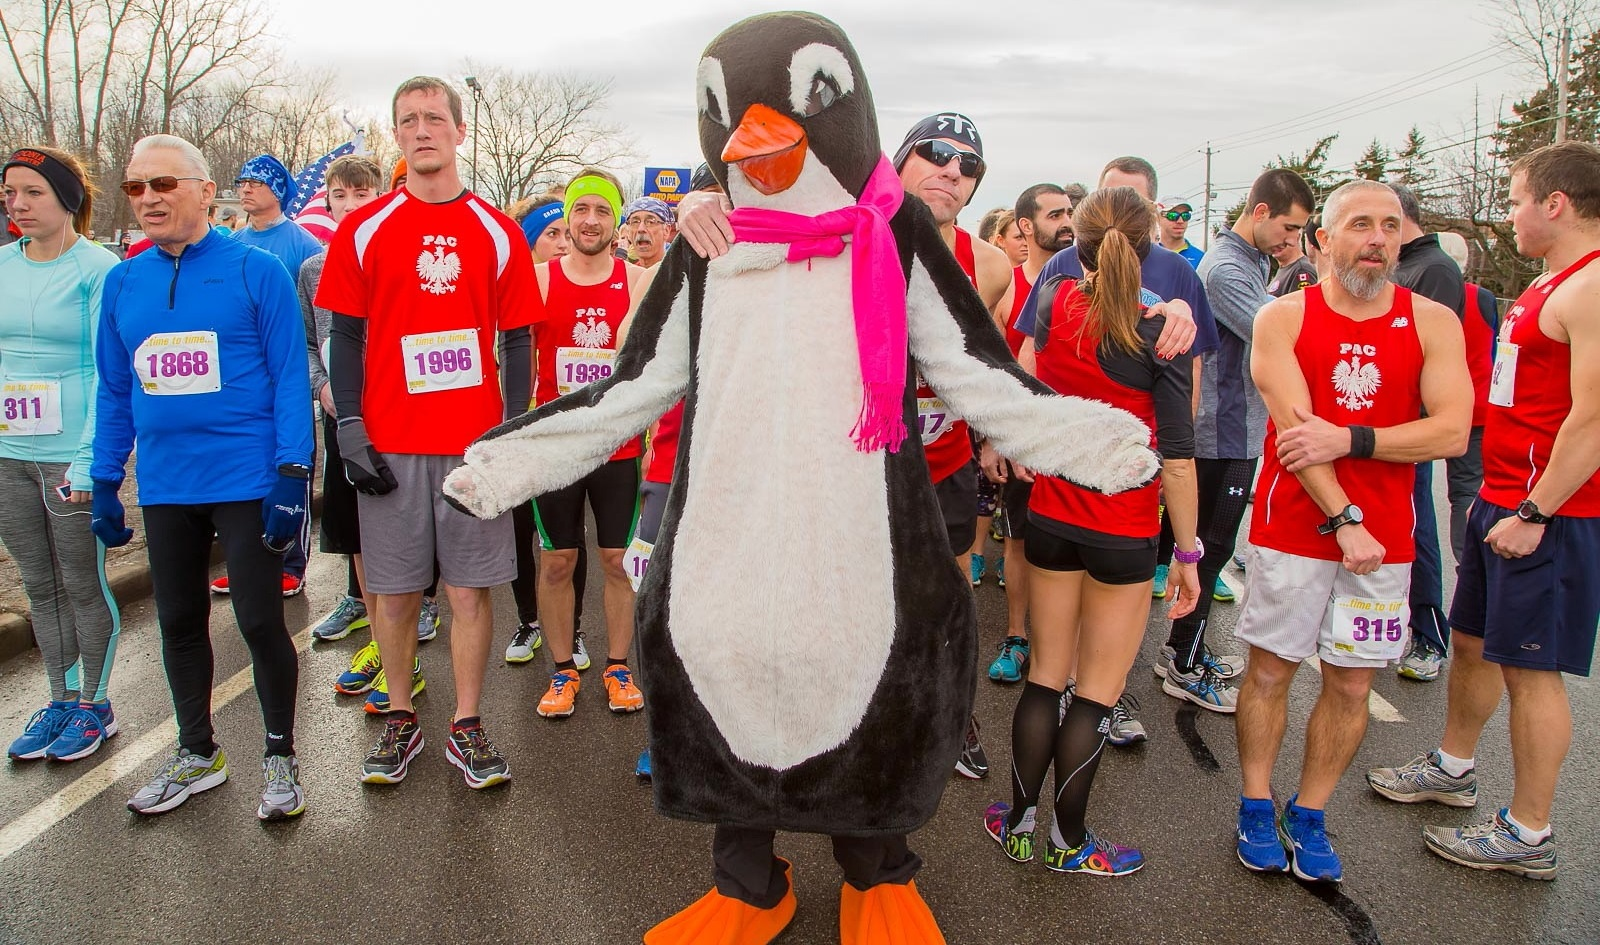 The penguin mascot for the Penguin Run poses by the starting line for the 2016 Penguin Run. (Don Nieman/Special to The News)